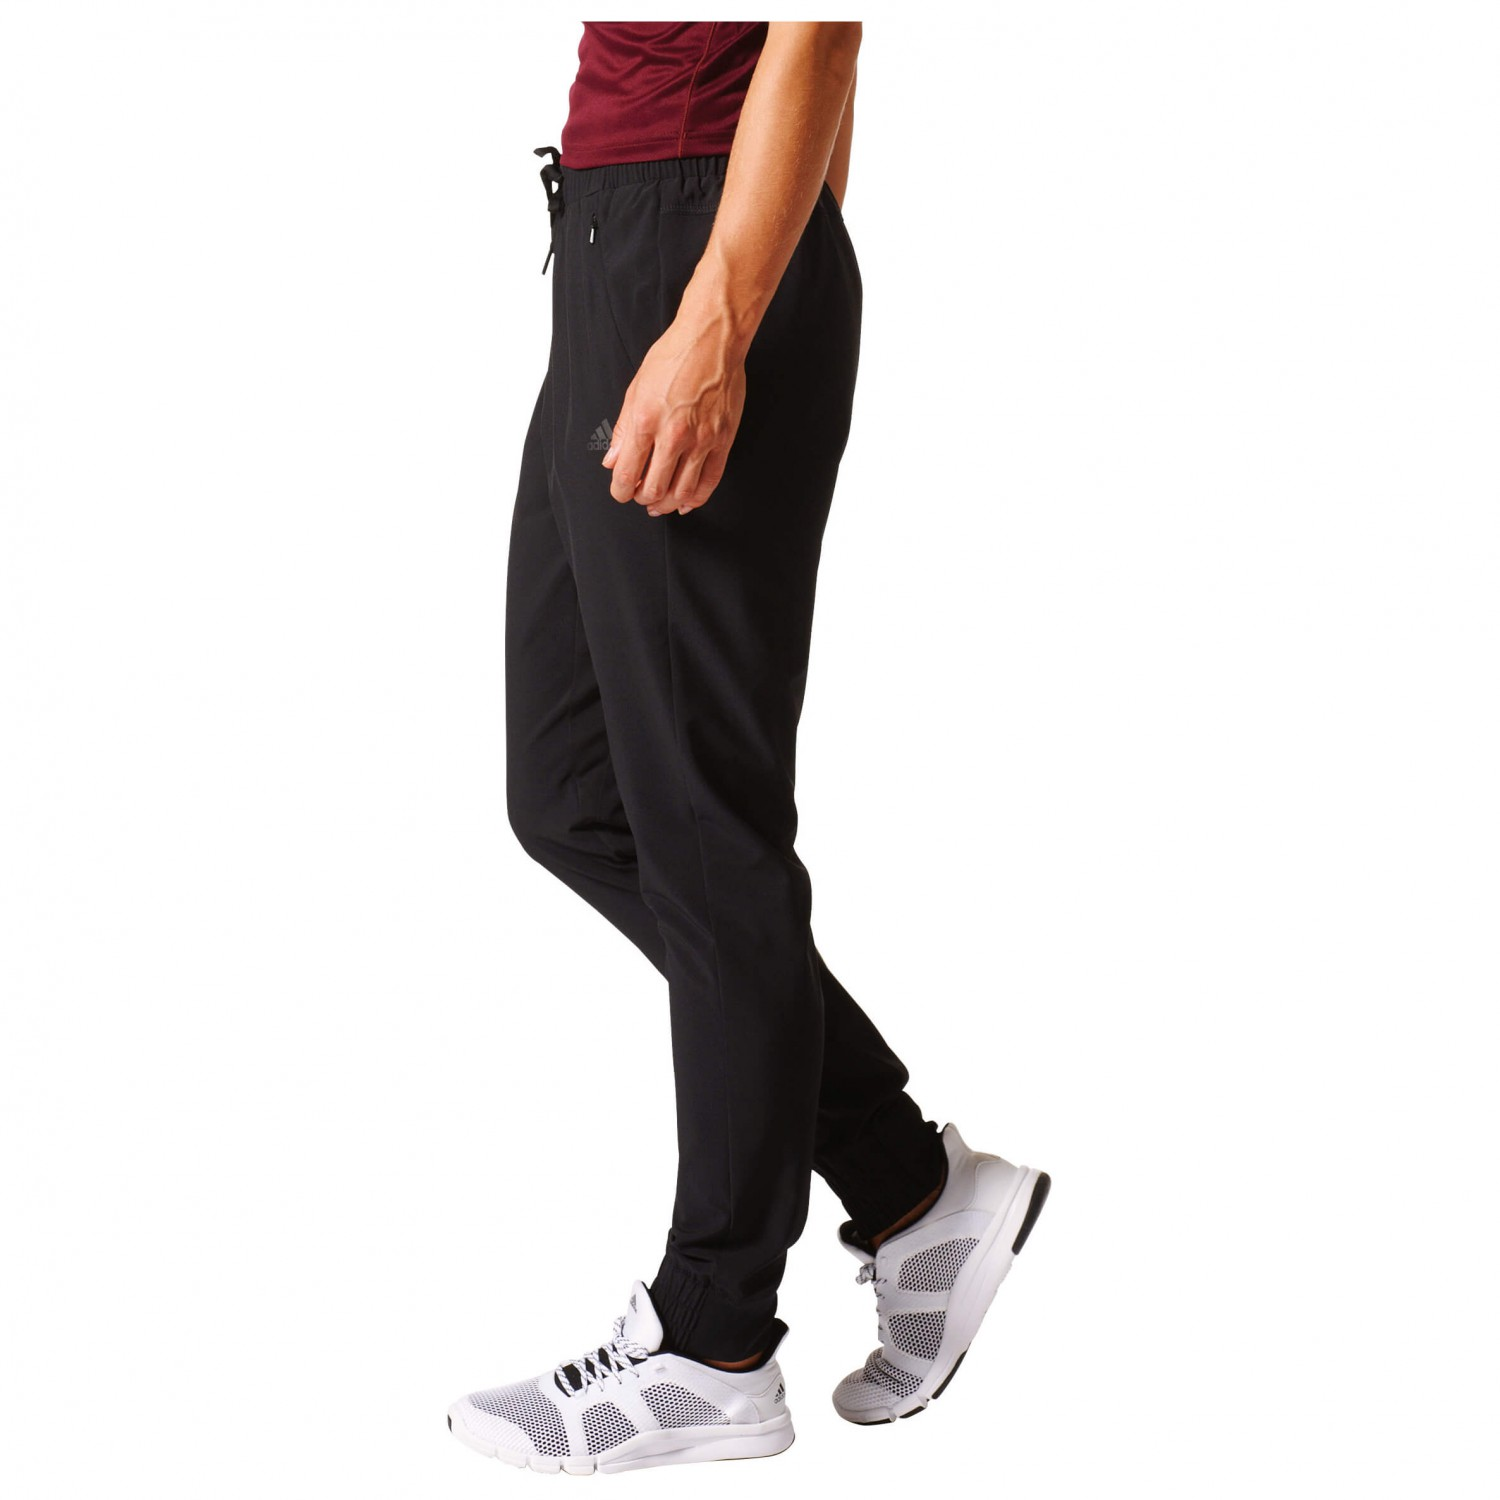 Adidas Perf PT Woven Tracksuit Trousers Women's | Buy